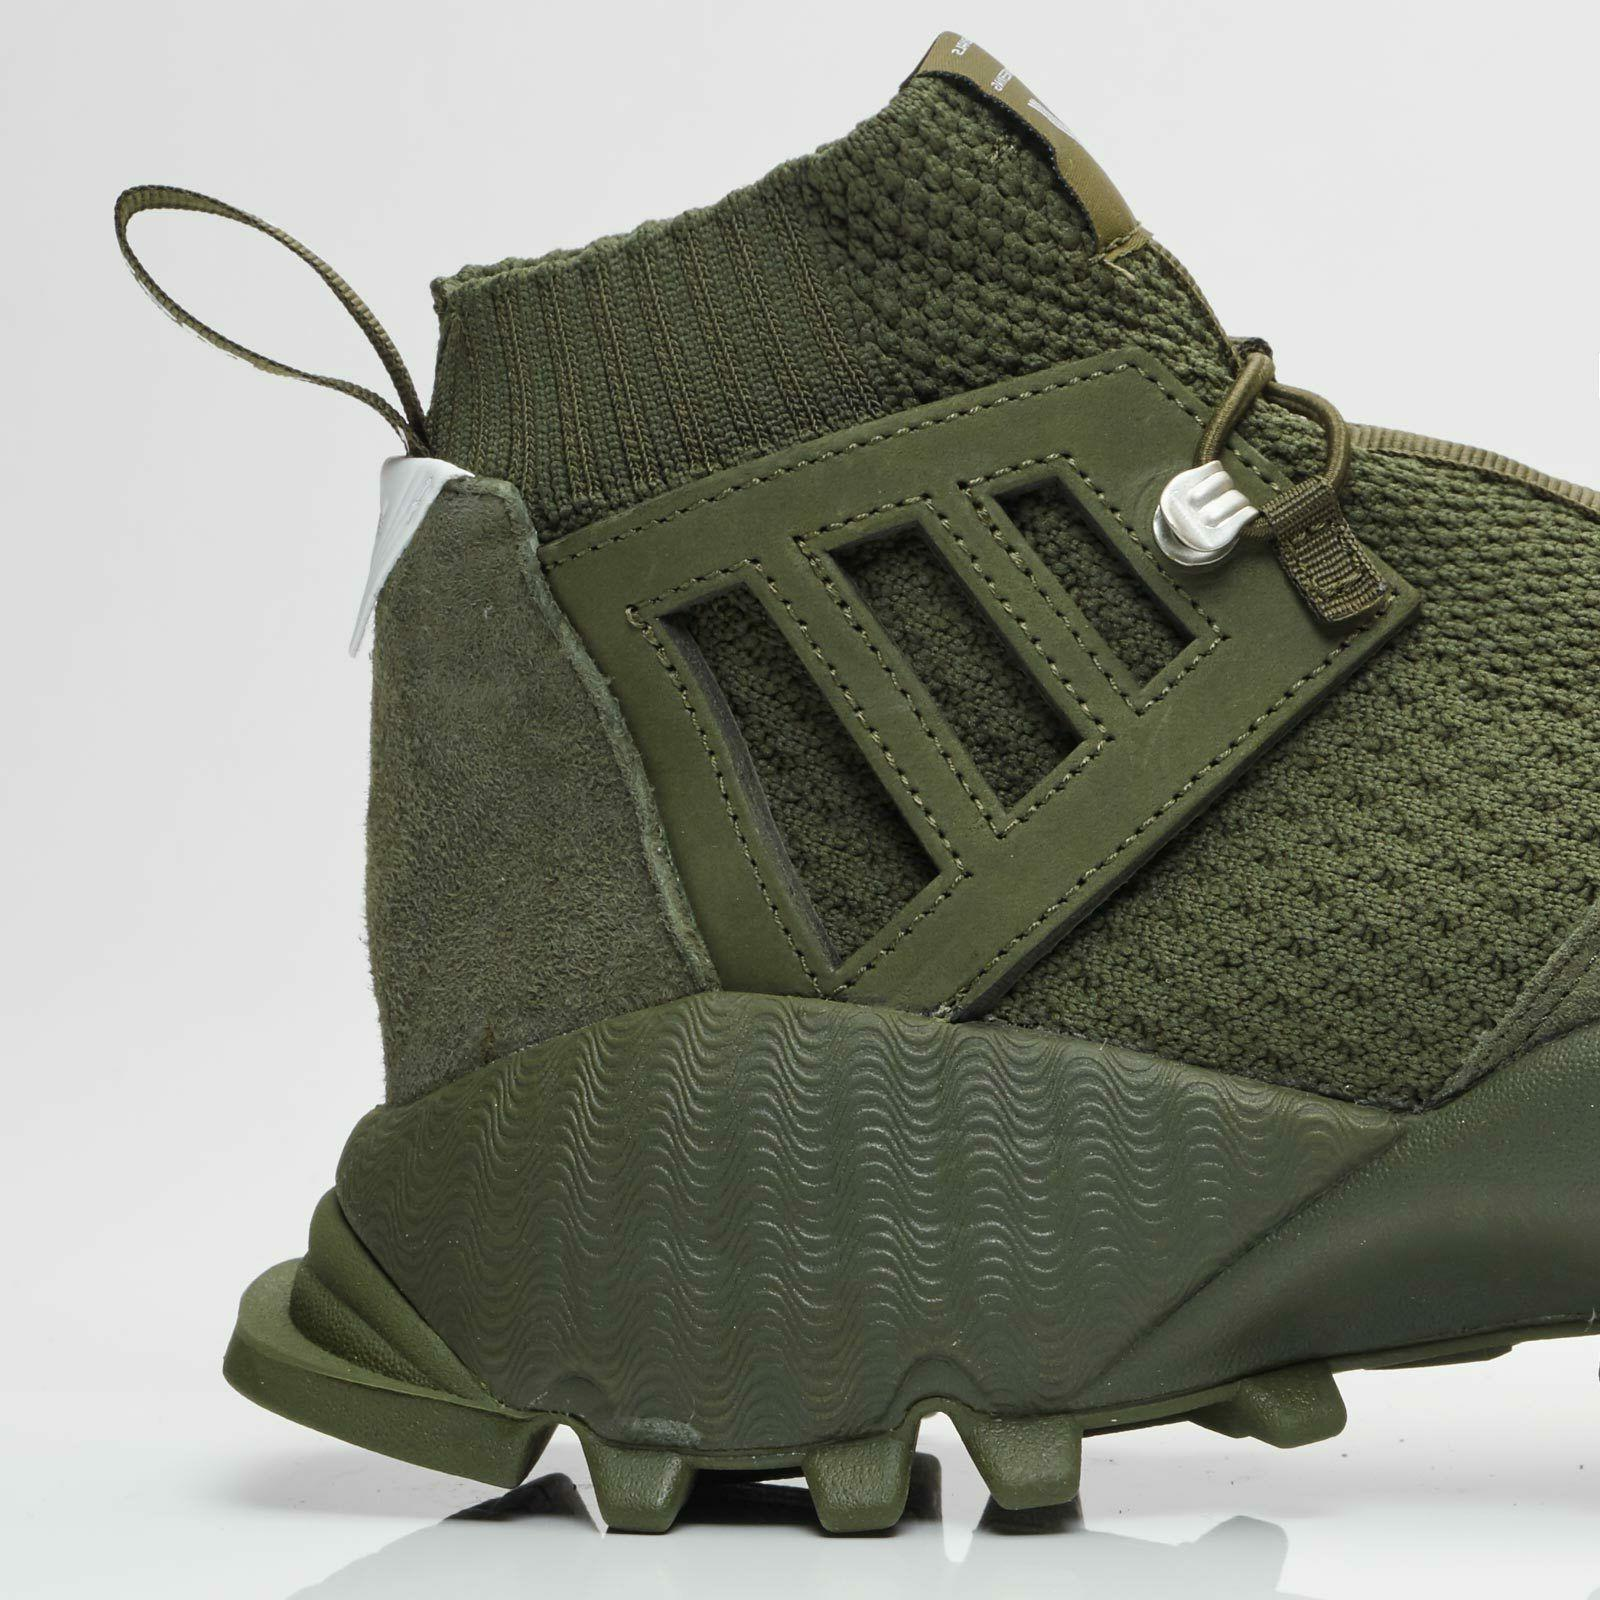 ADIDAS boots 9.5 Shoes Green